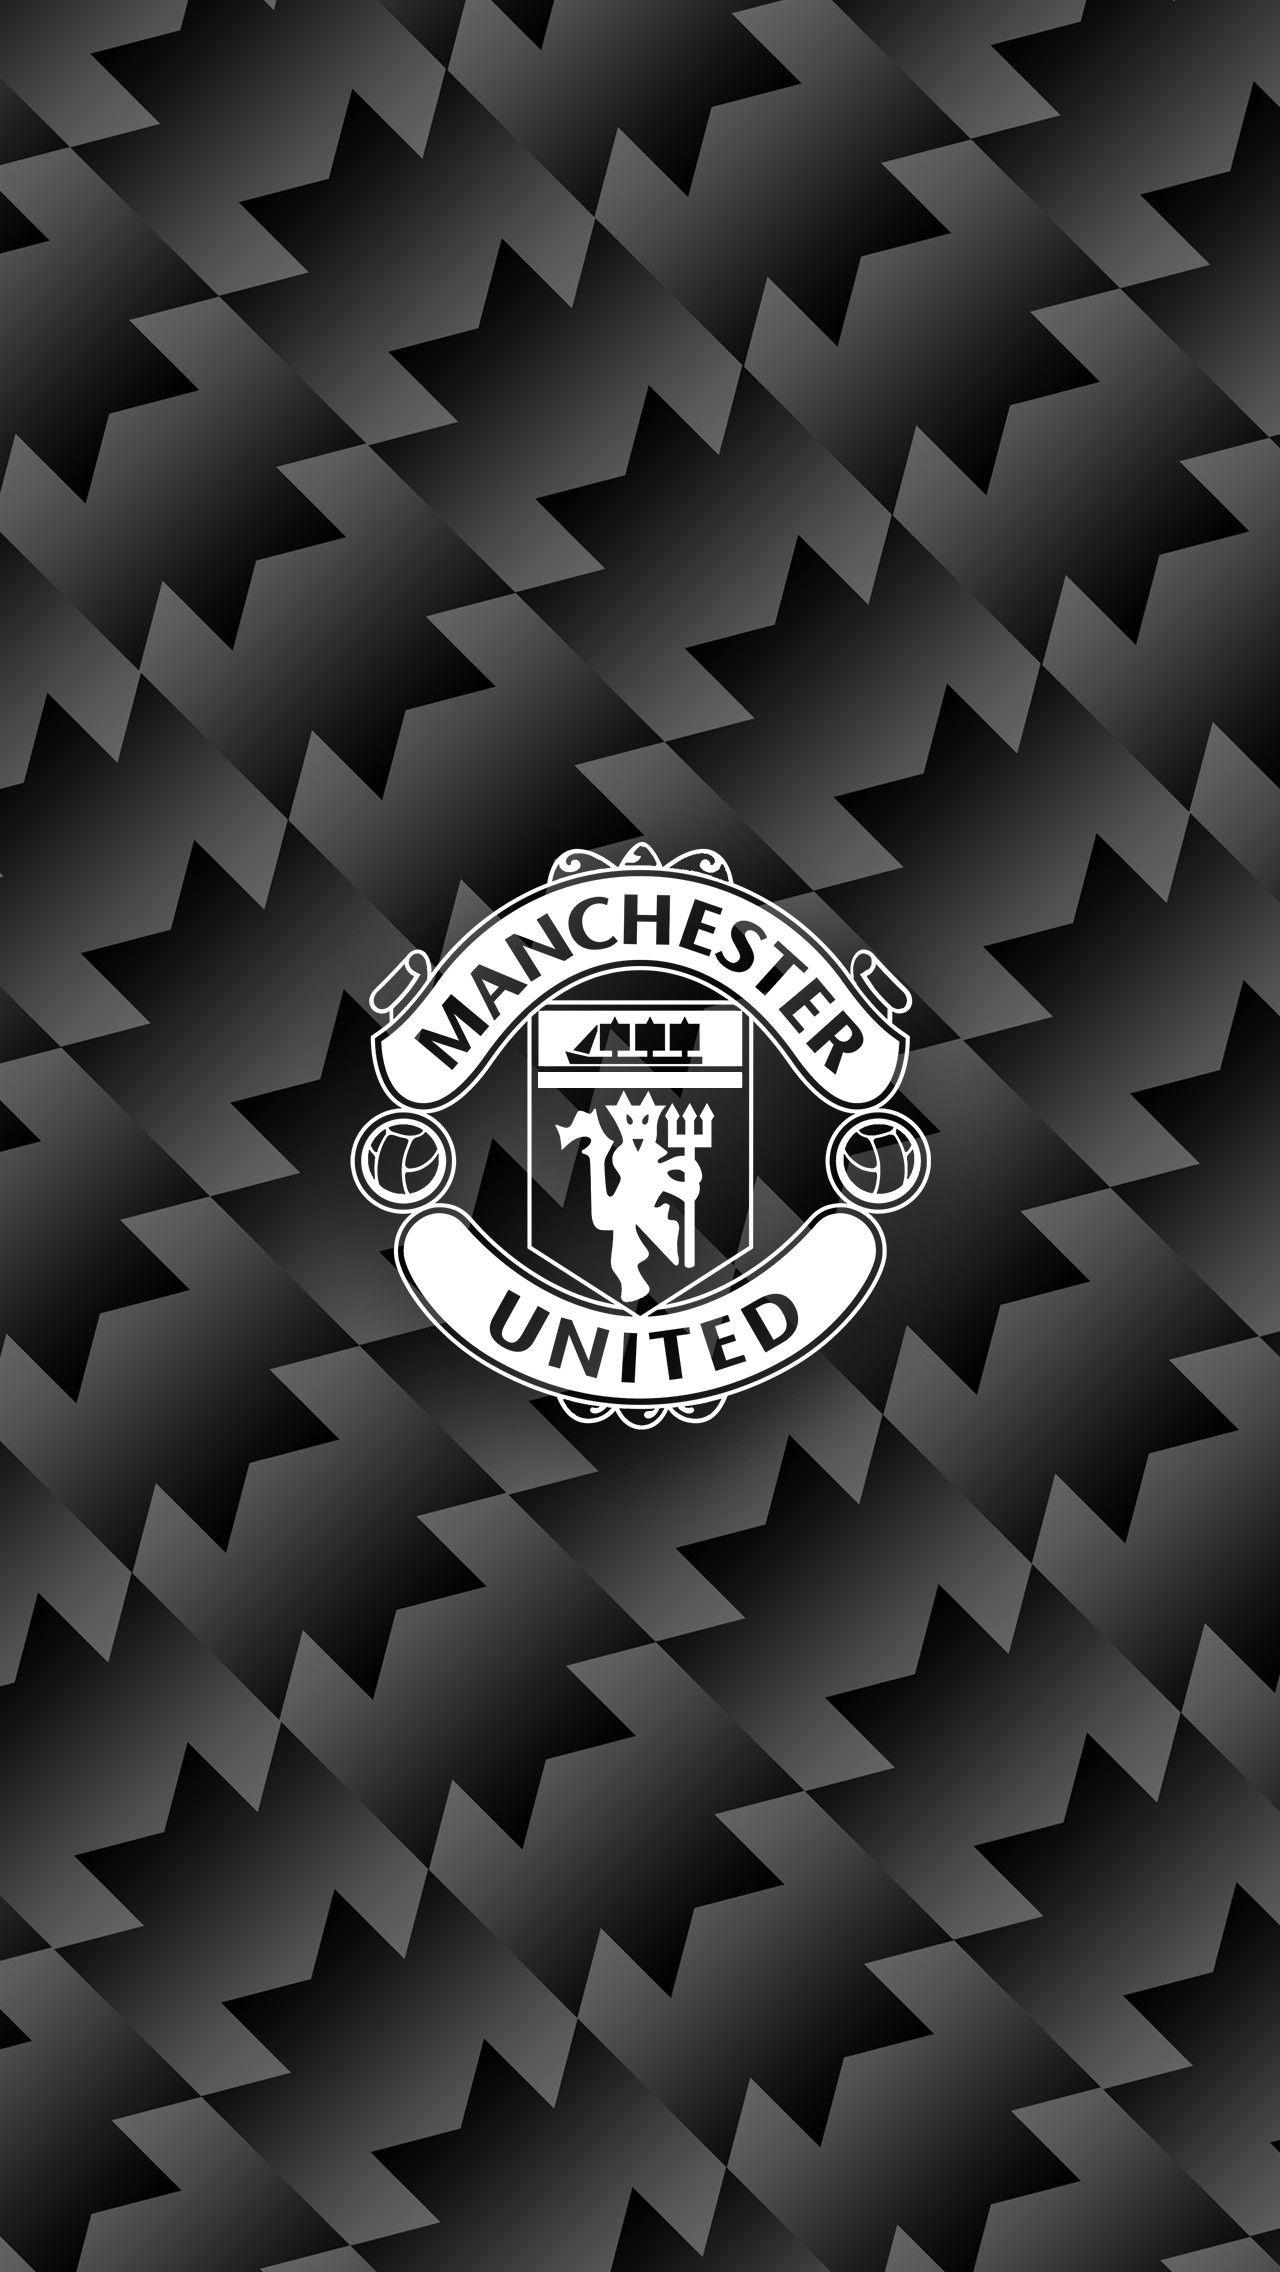 manchester united wallpapers black wallpaper cave manchester united wallpapers black